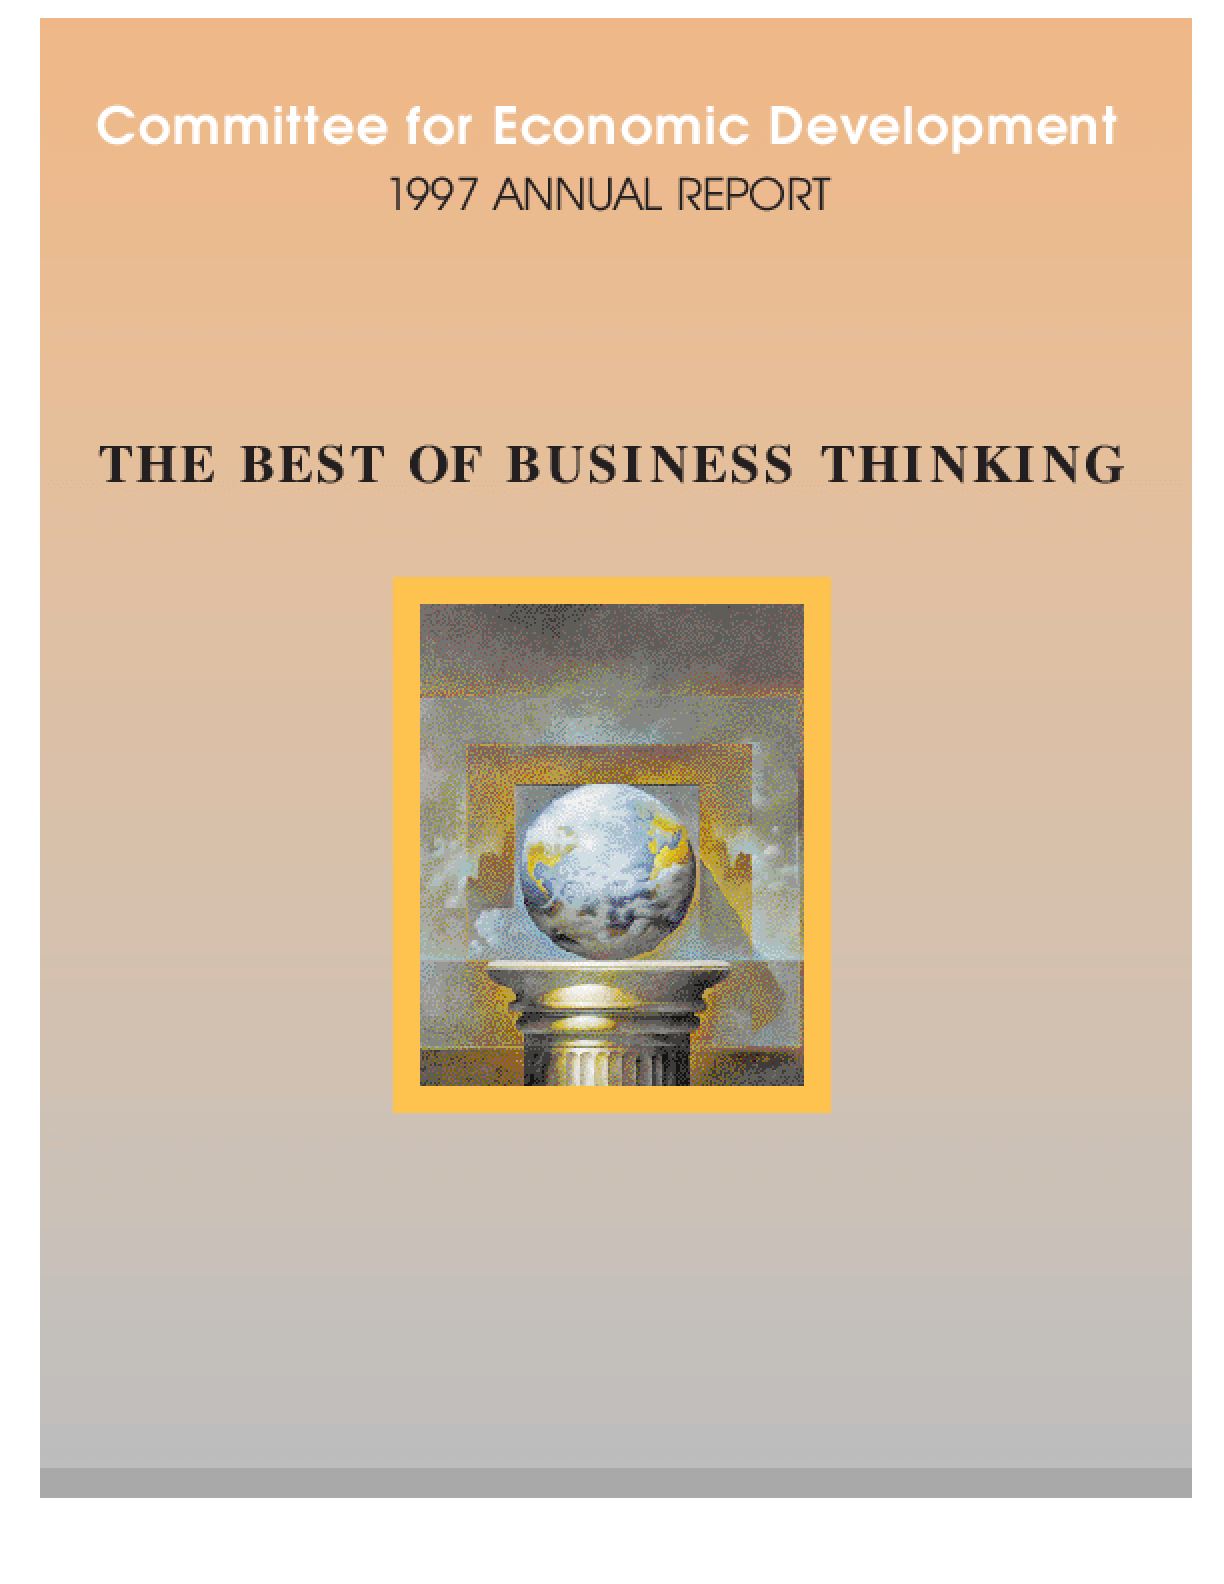 CED's 1997 Annual Report